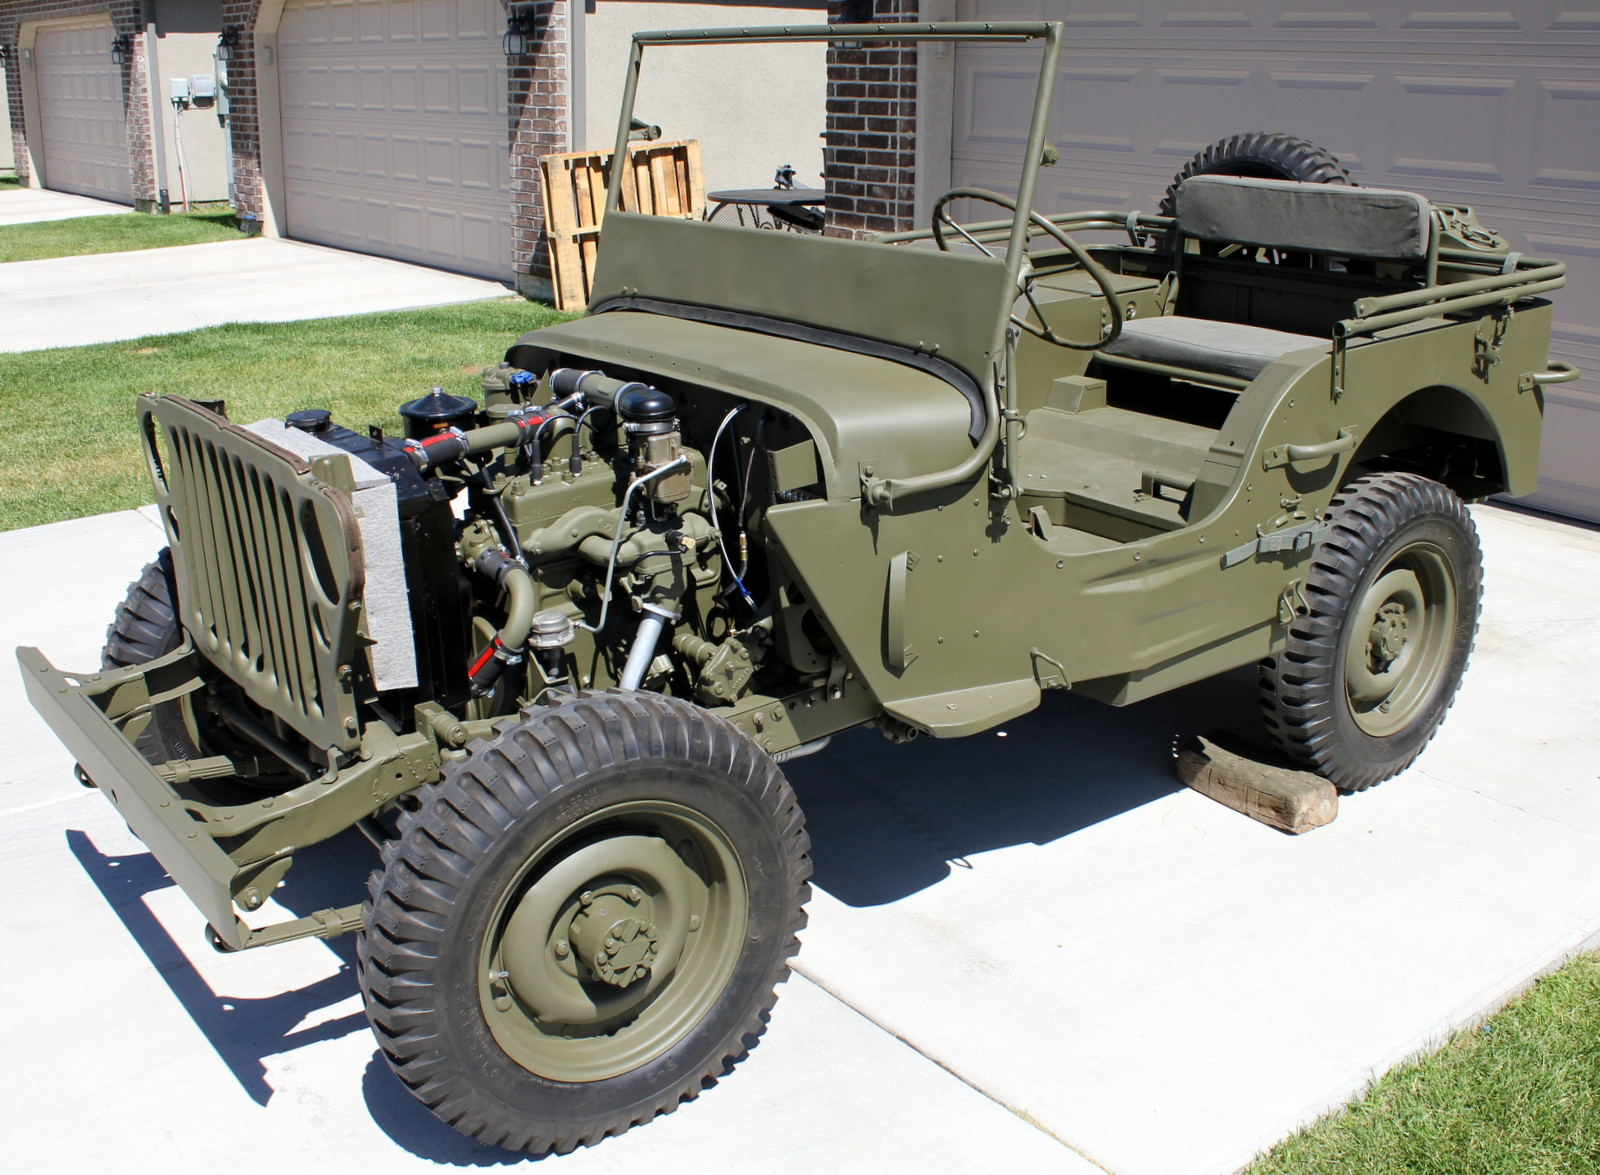 1943 willys mb jeep restoration project june 2013. Black Bedroom Furniture Sets. Home Design Ideas